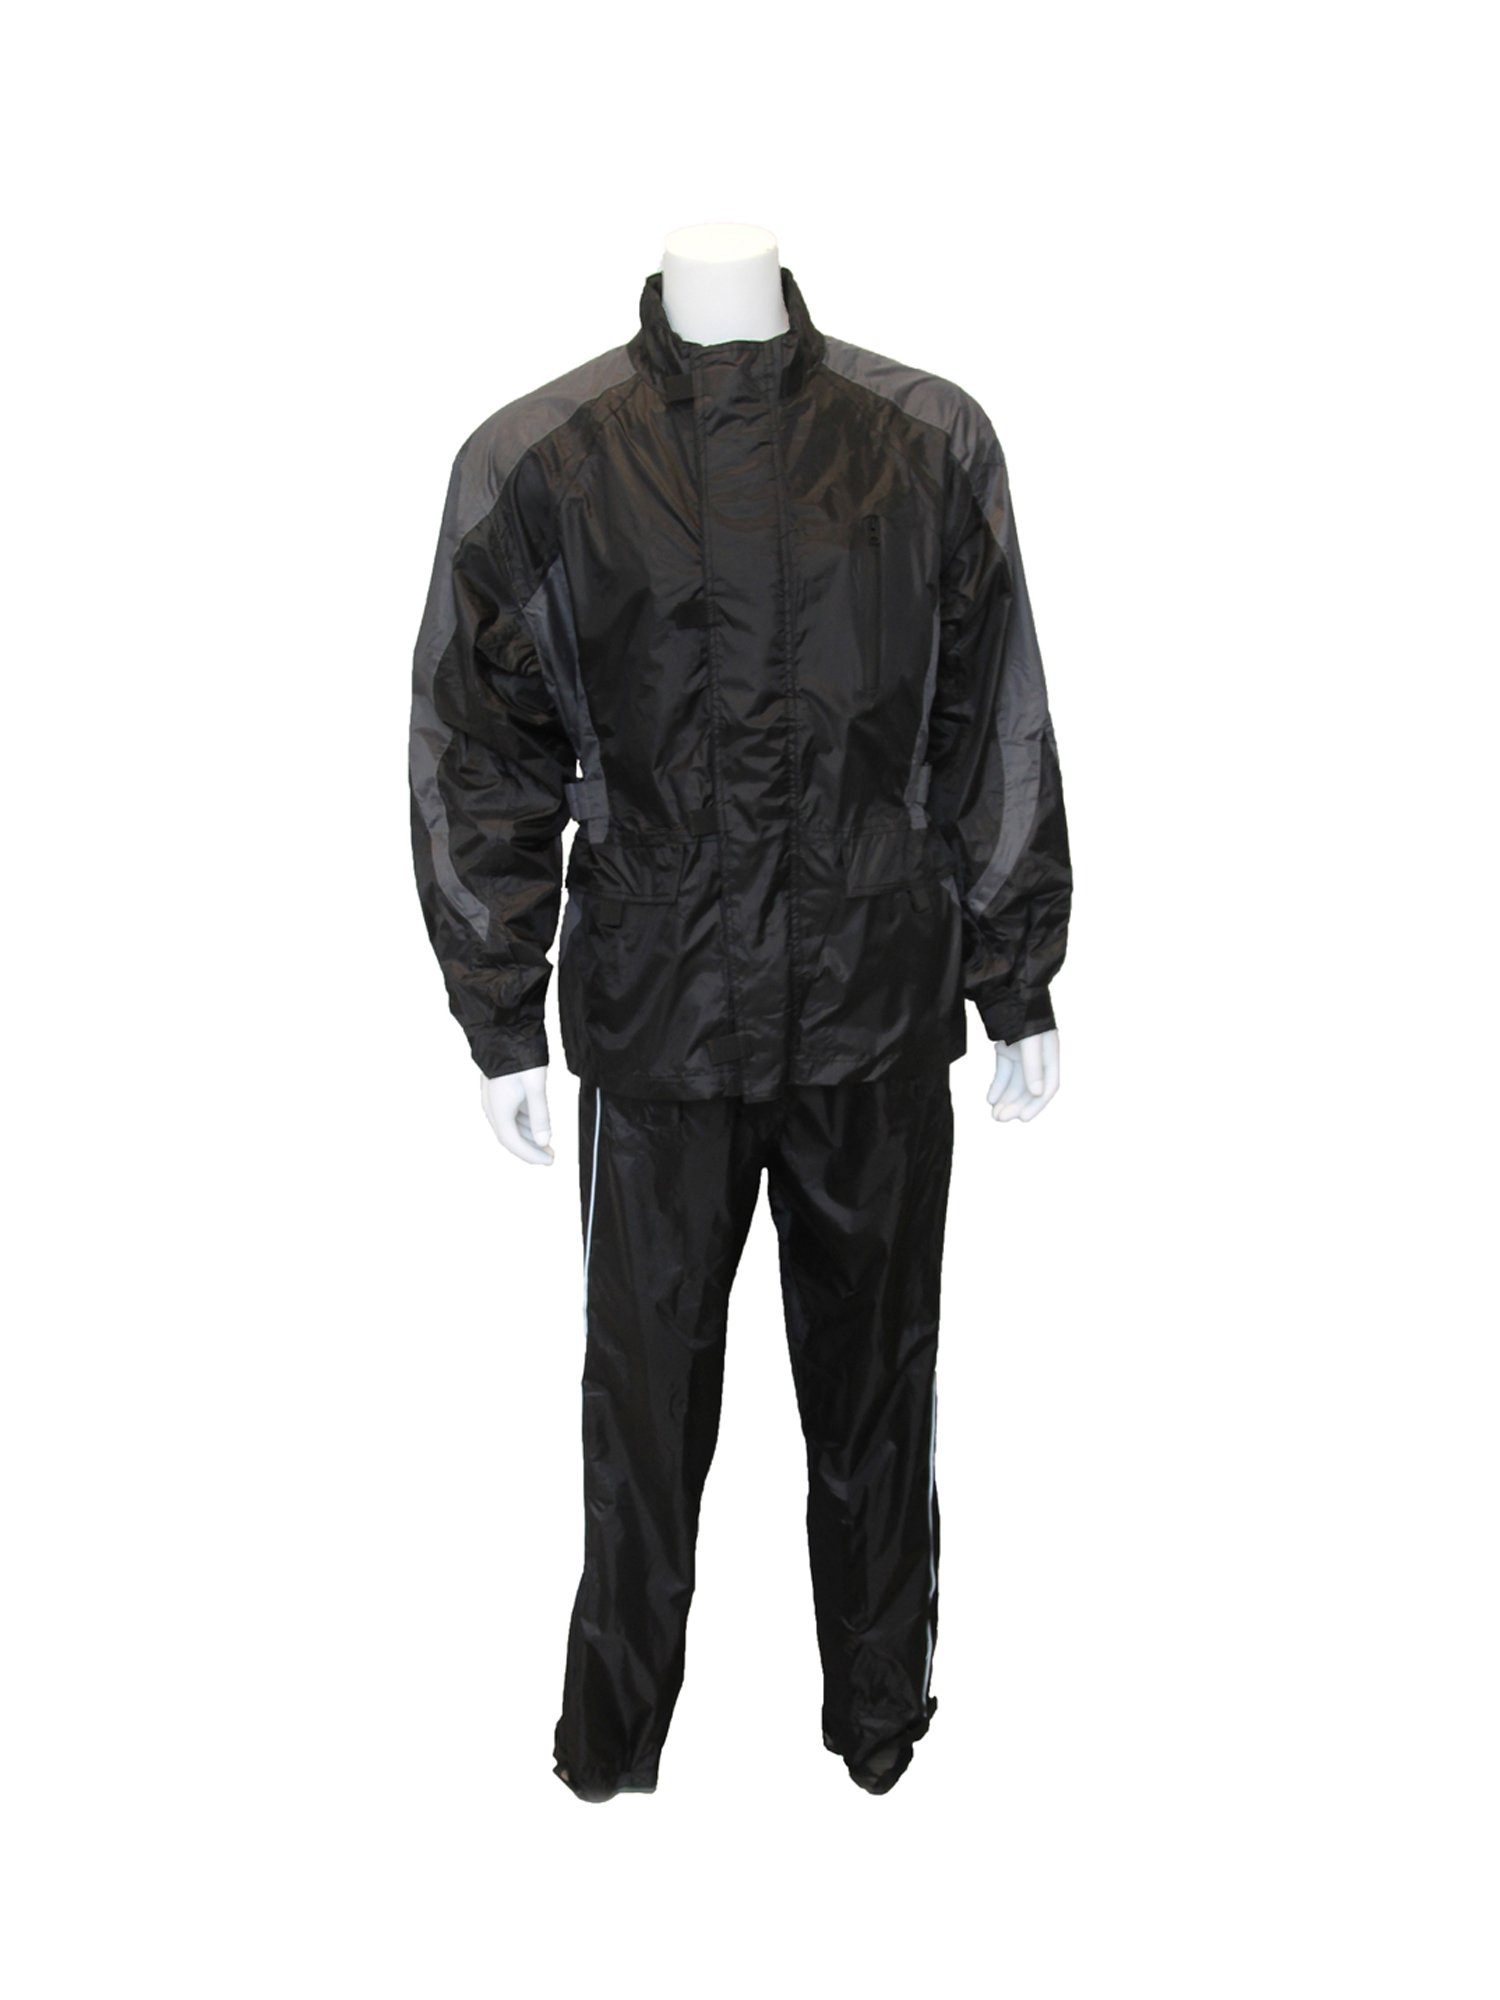 RoadDog 2 Pc Stay-Dry Motorcycle Rain Suit Waterproof Adult Silver/Black X-Large